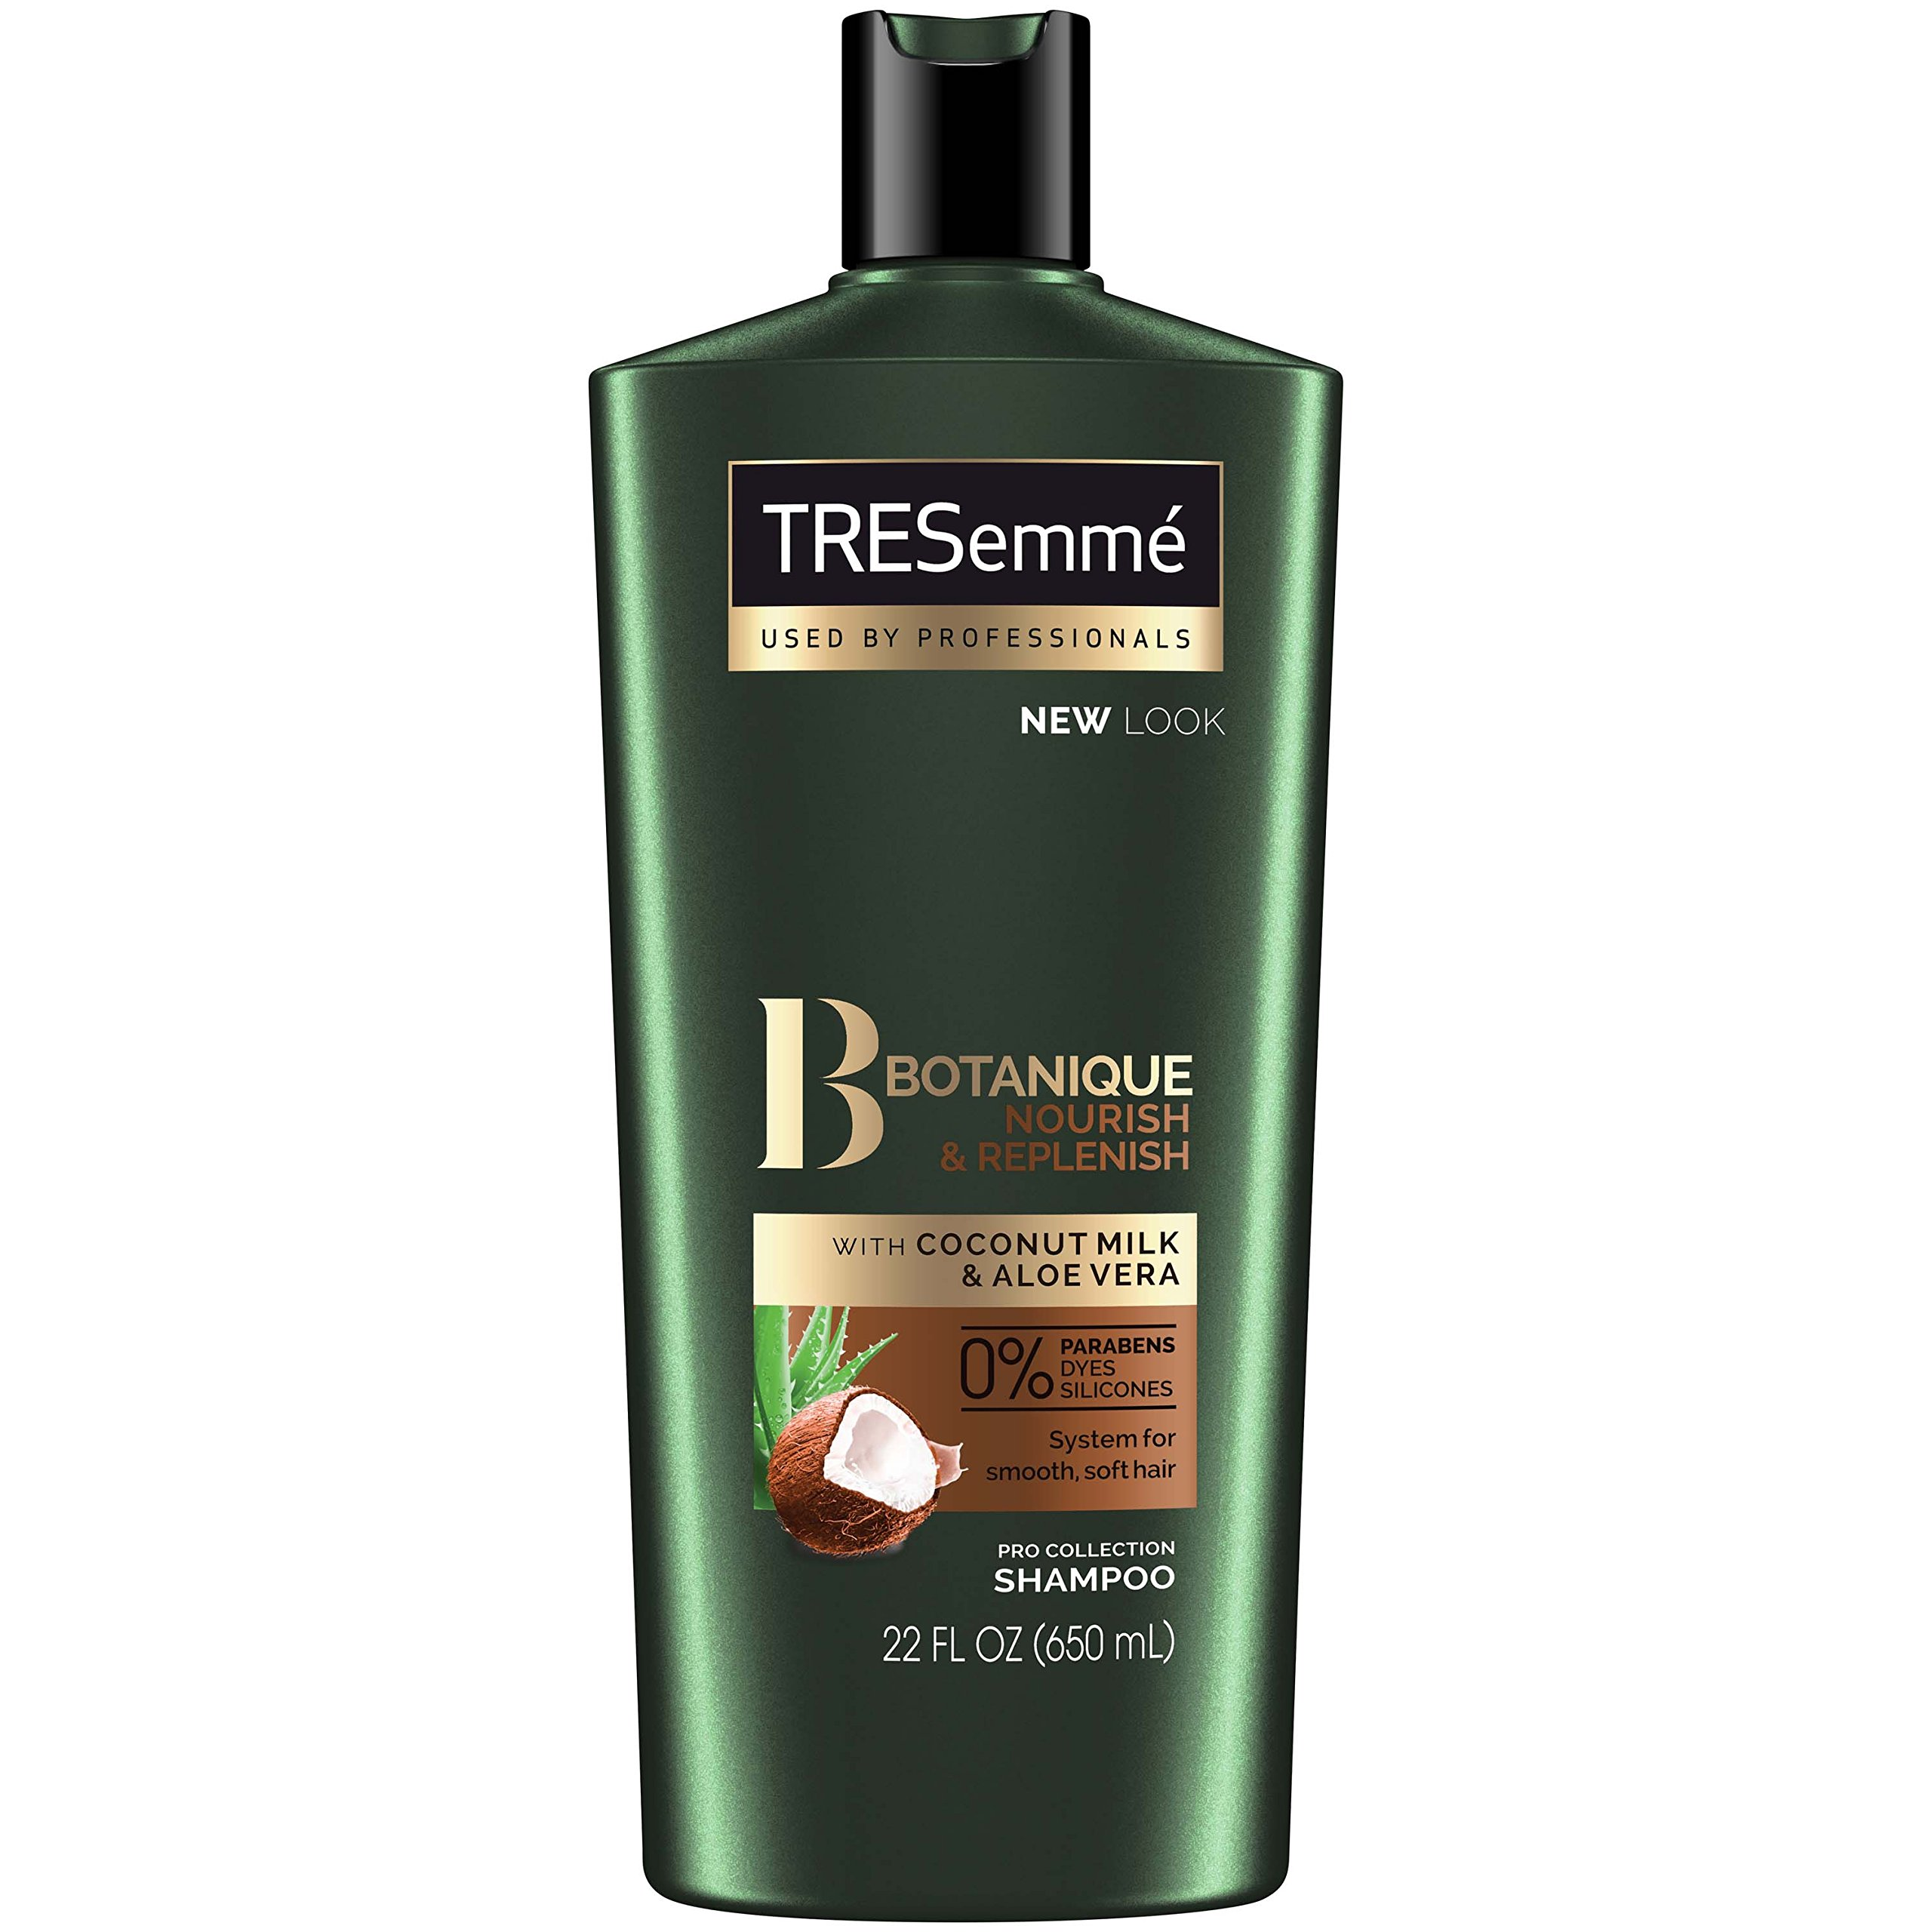 Tresemme Nourish & Replenish Botanique Shampoo, 22 Fl Oz (Pack of 4) by TRESemmé